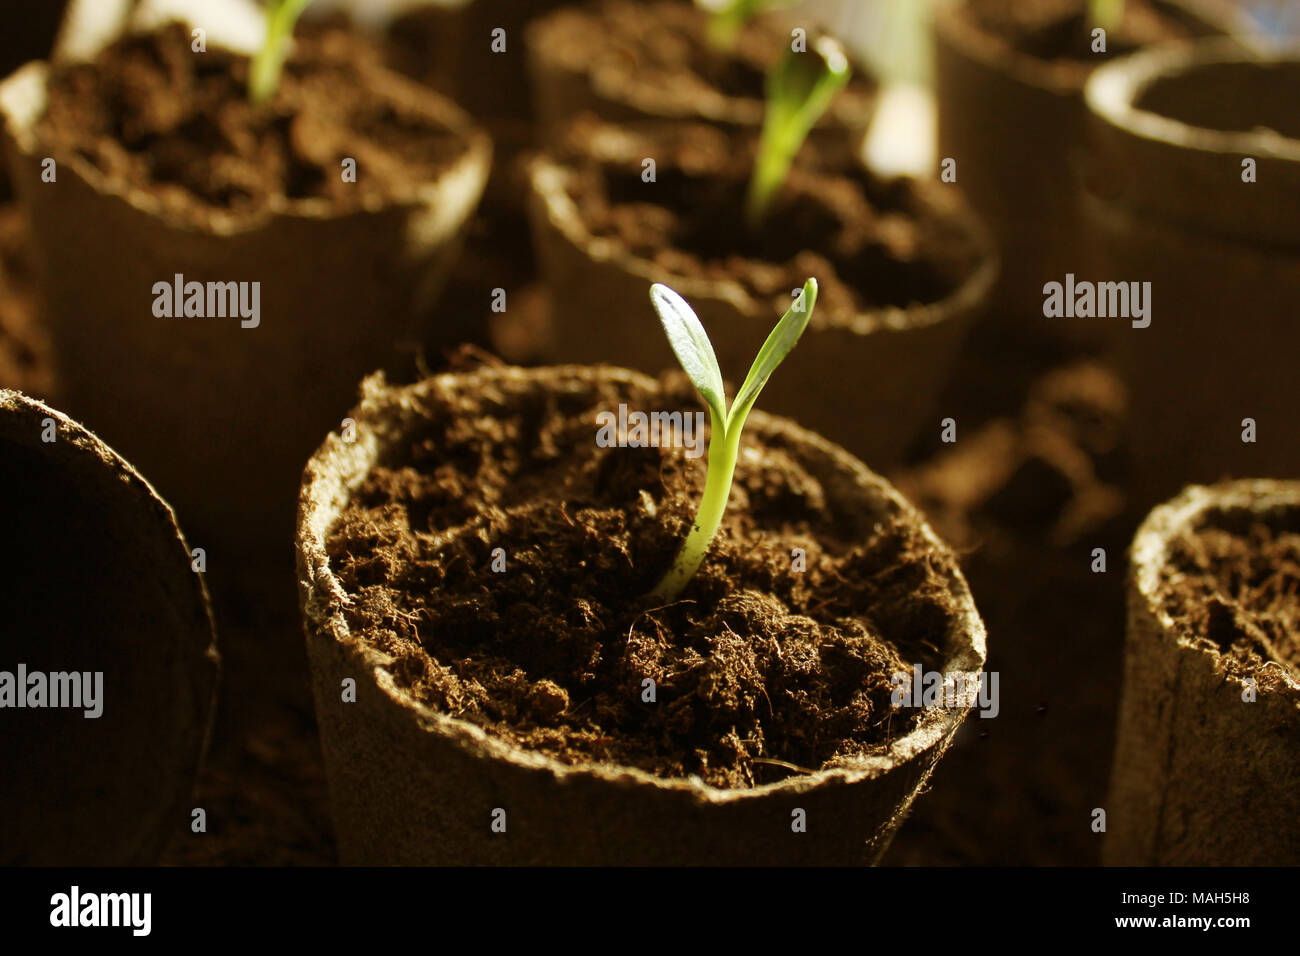 Young fresh seedling growing in pots - Stock Image